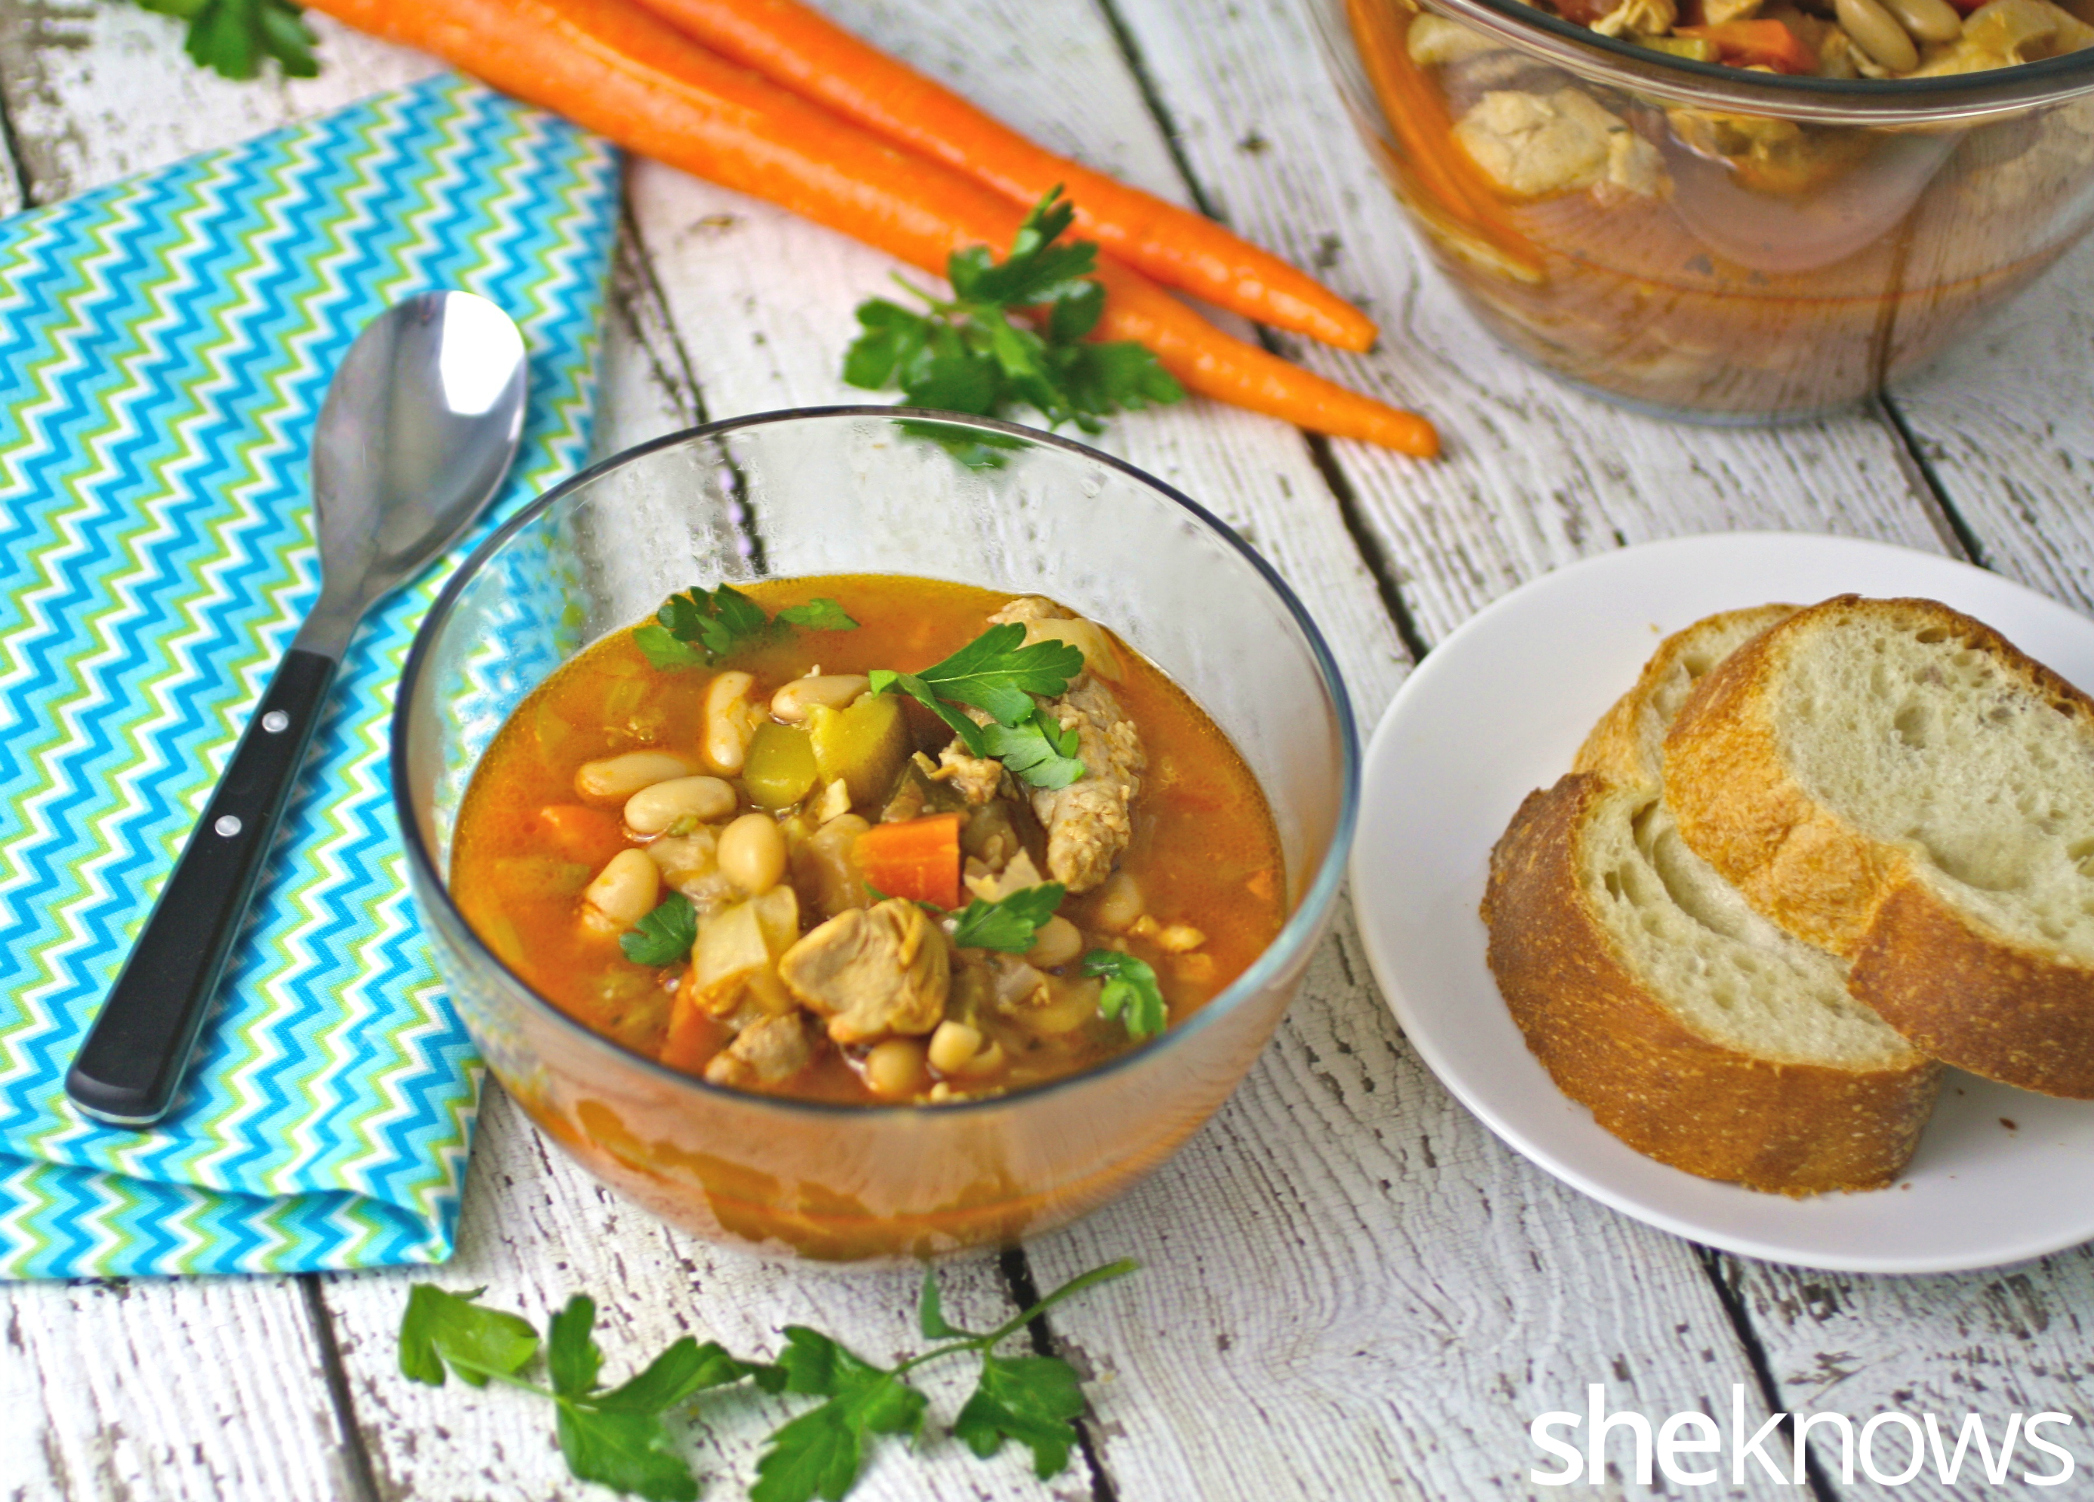 This recipe for Slow cooker Sunday chicken and sausage cassoulet is ...